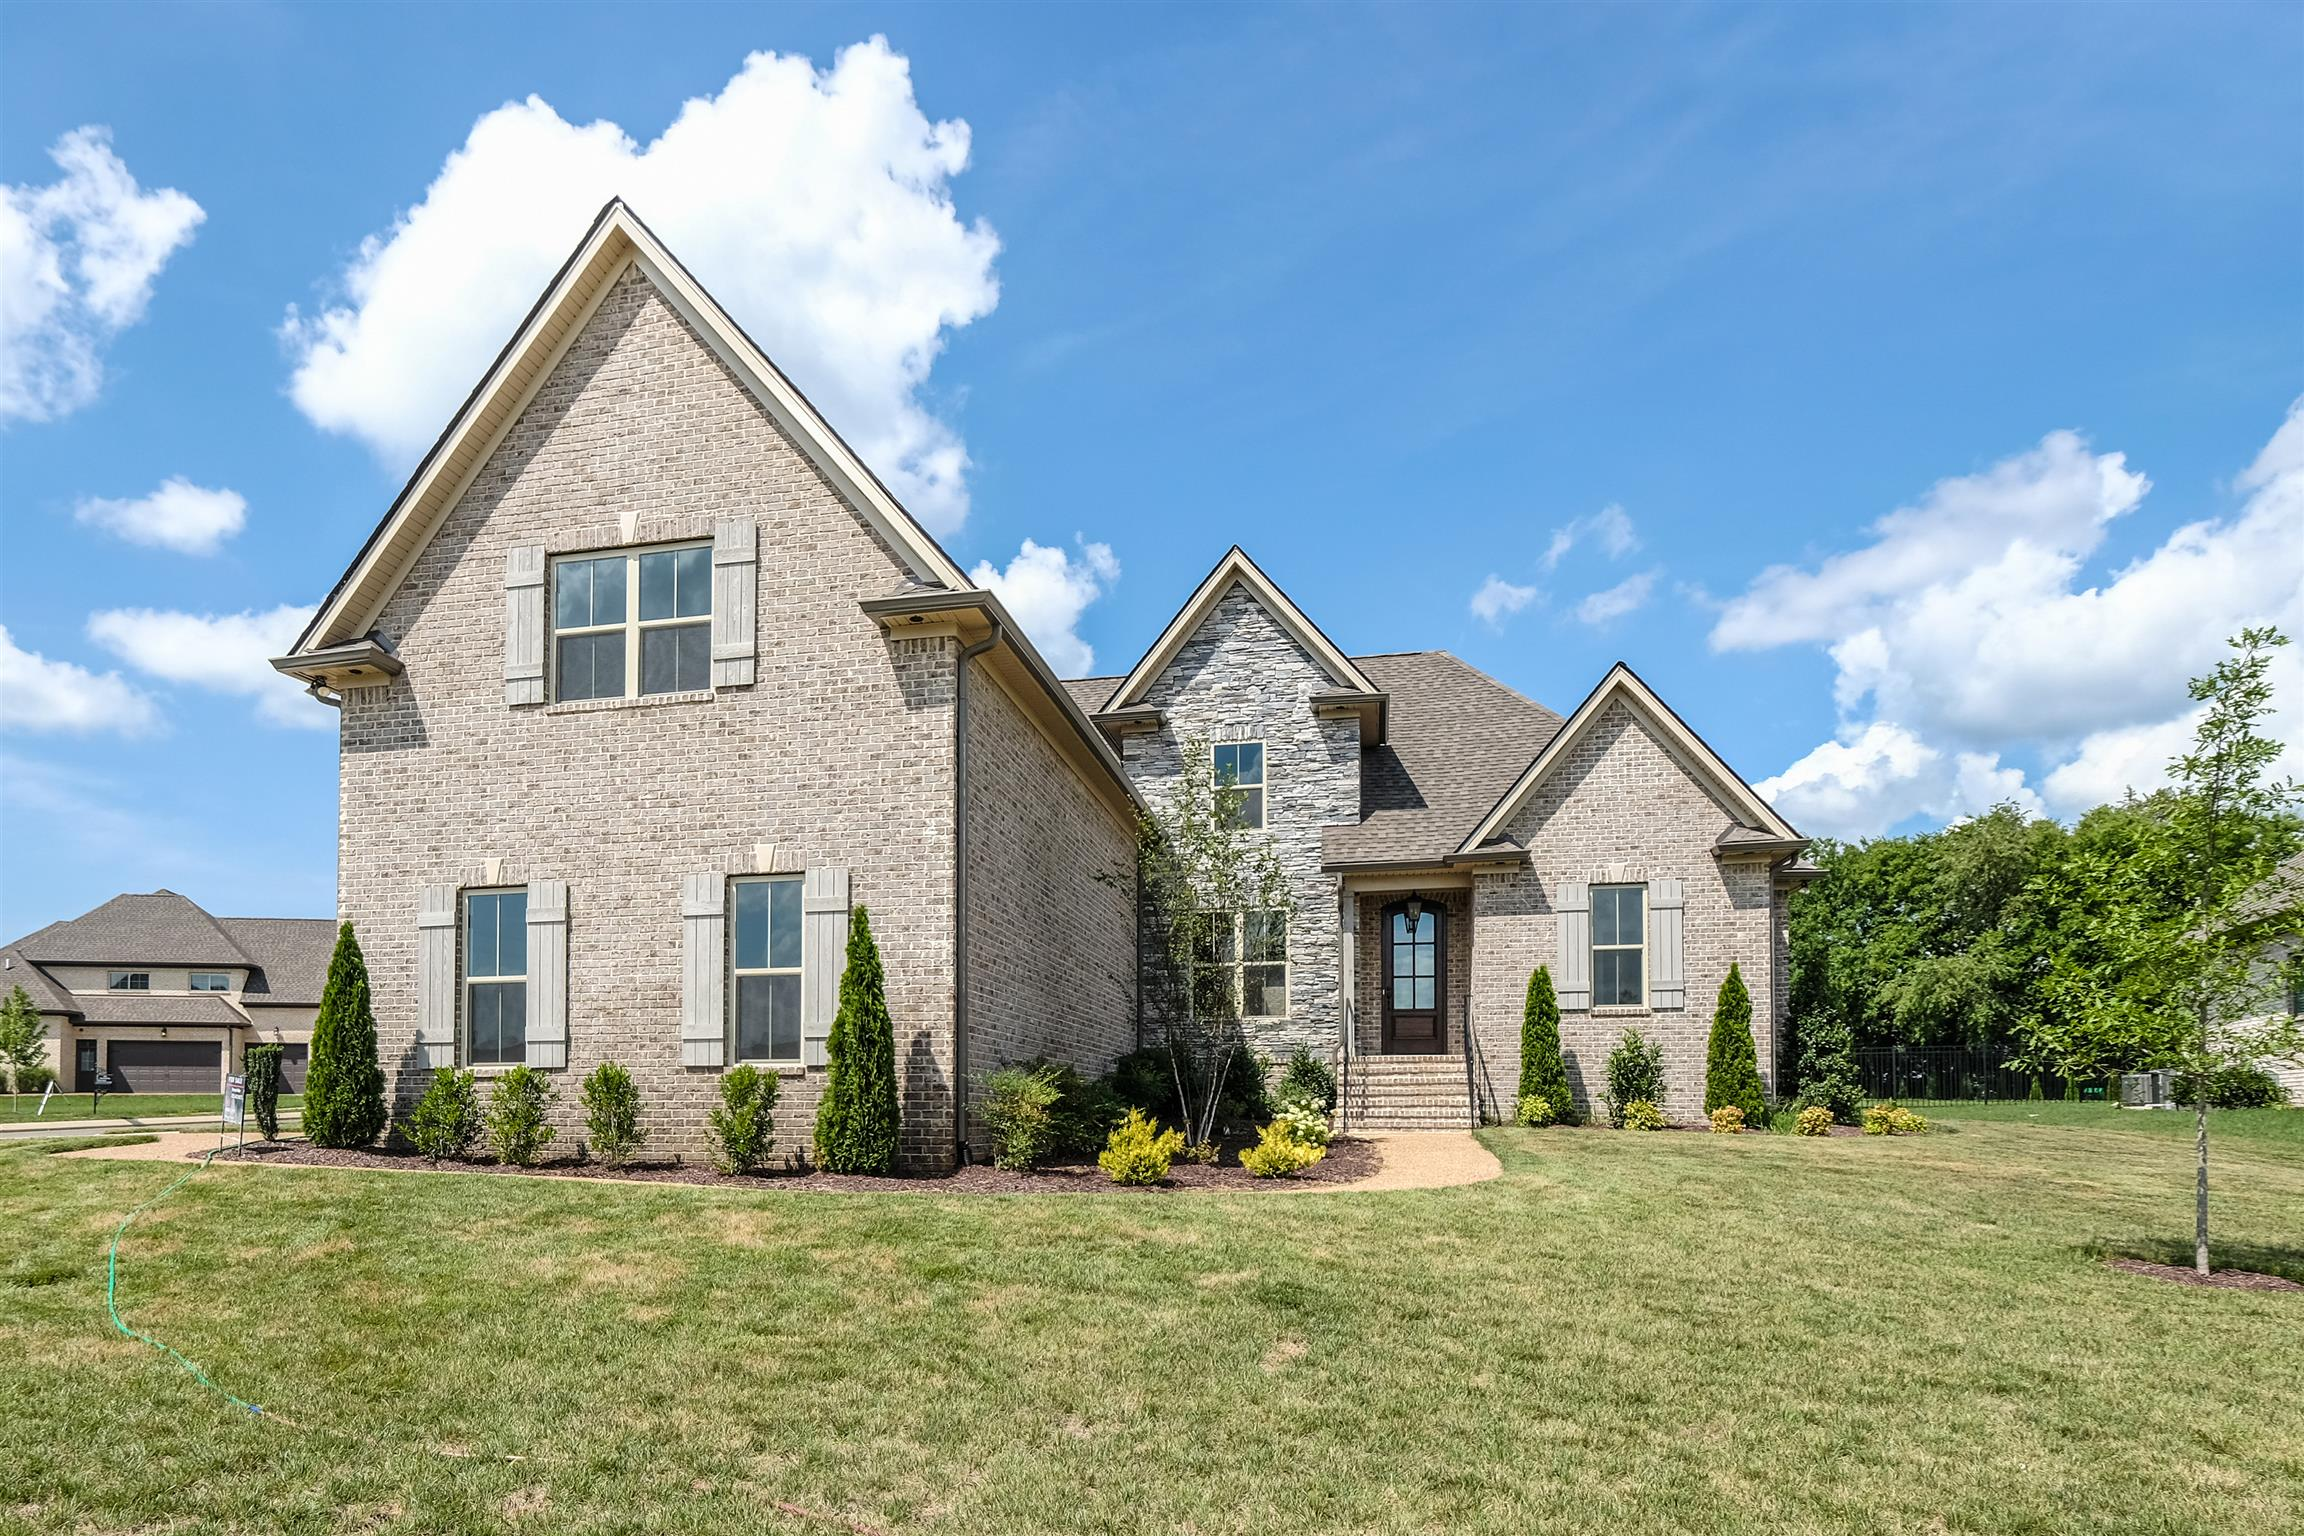 101 Cardigan Ct (Lot 218), Spring Hill, Tennessee